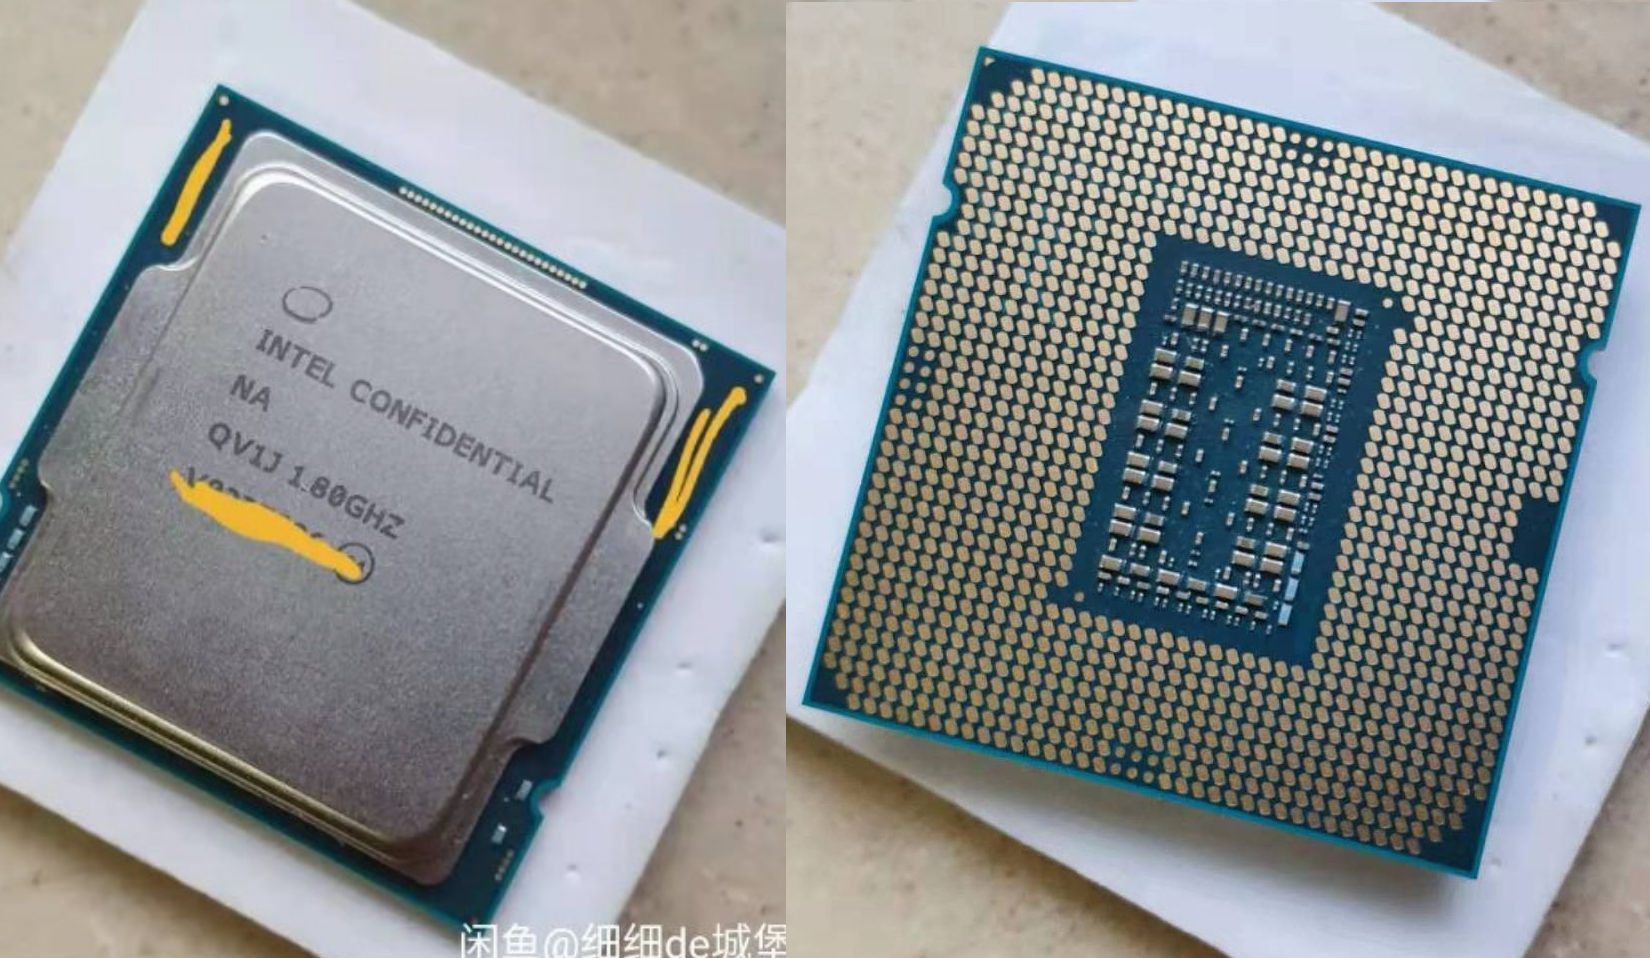 Intel Core i9-11900 matches the Intel Core i9-10900K in single-threaded tests according to leaked benchmarks